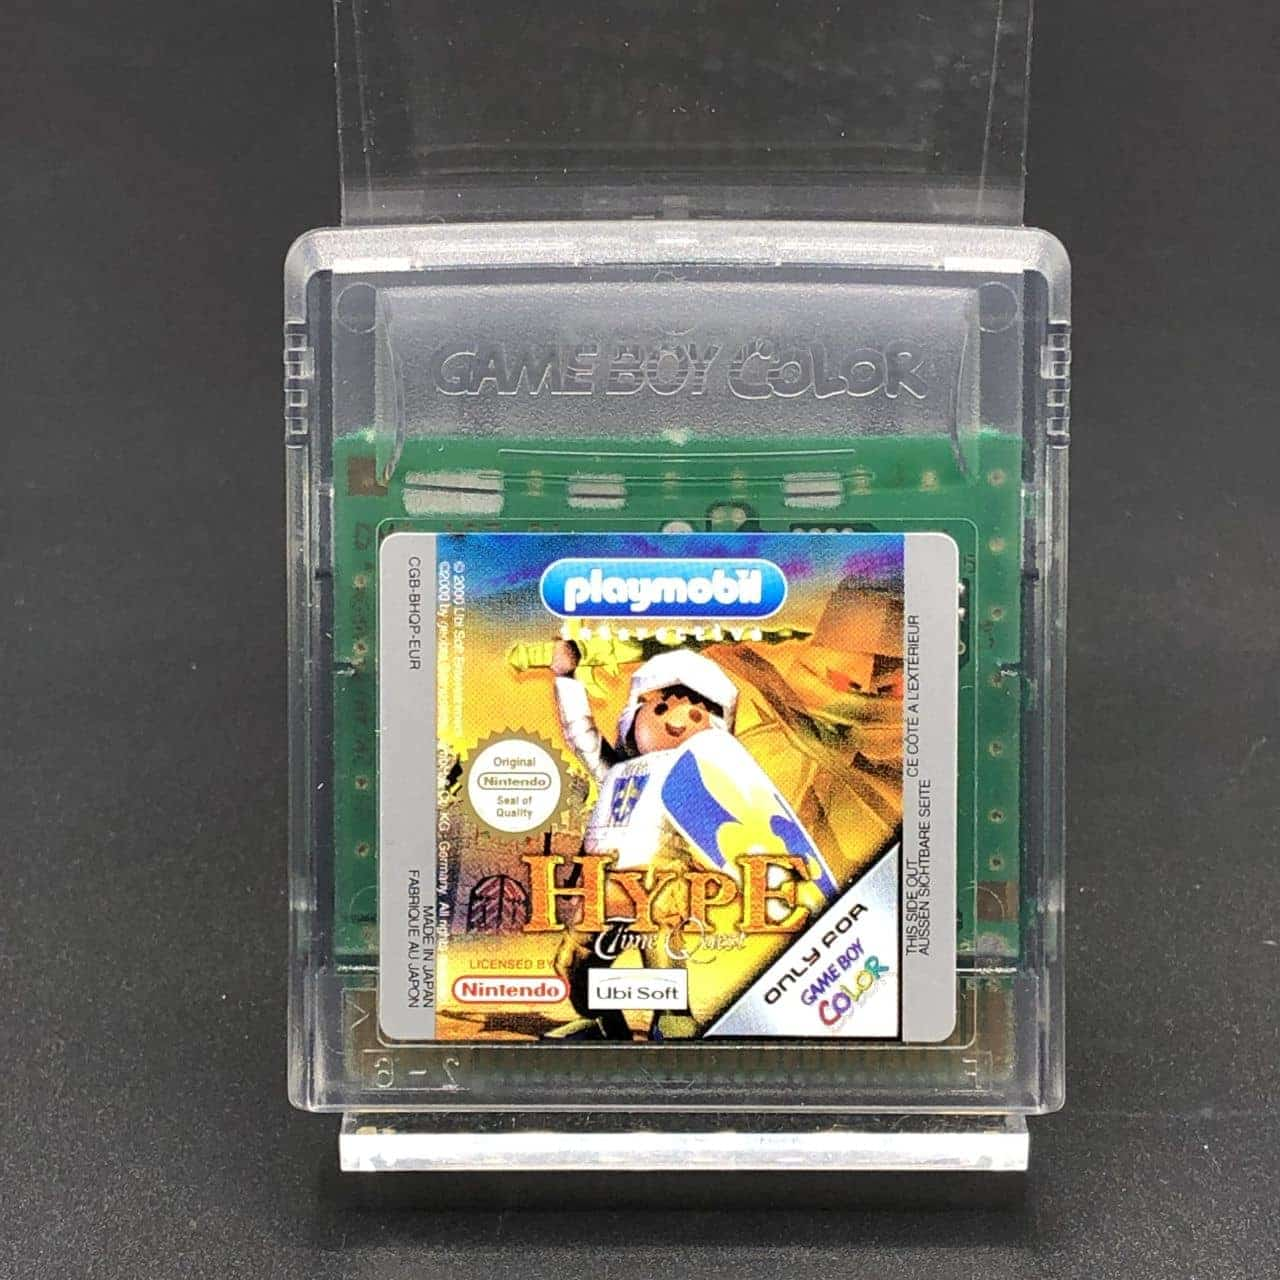 GBC Hype: The Time Quest (Modul) (Sehr gut) Nintendo Game Boy Color